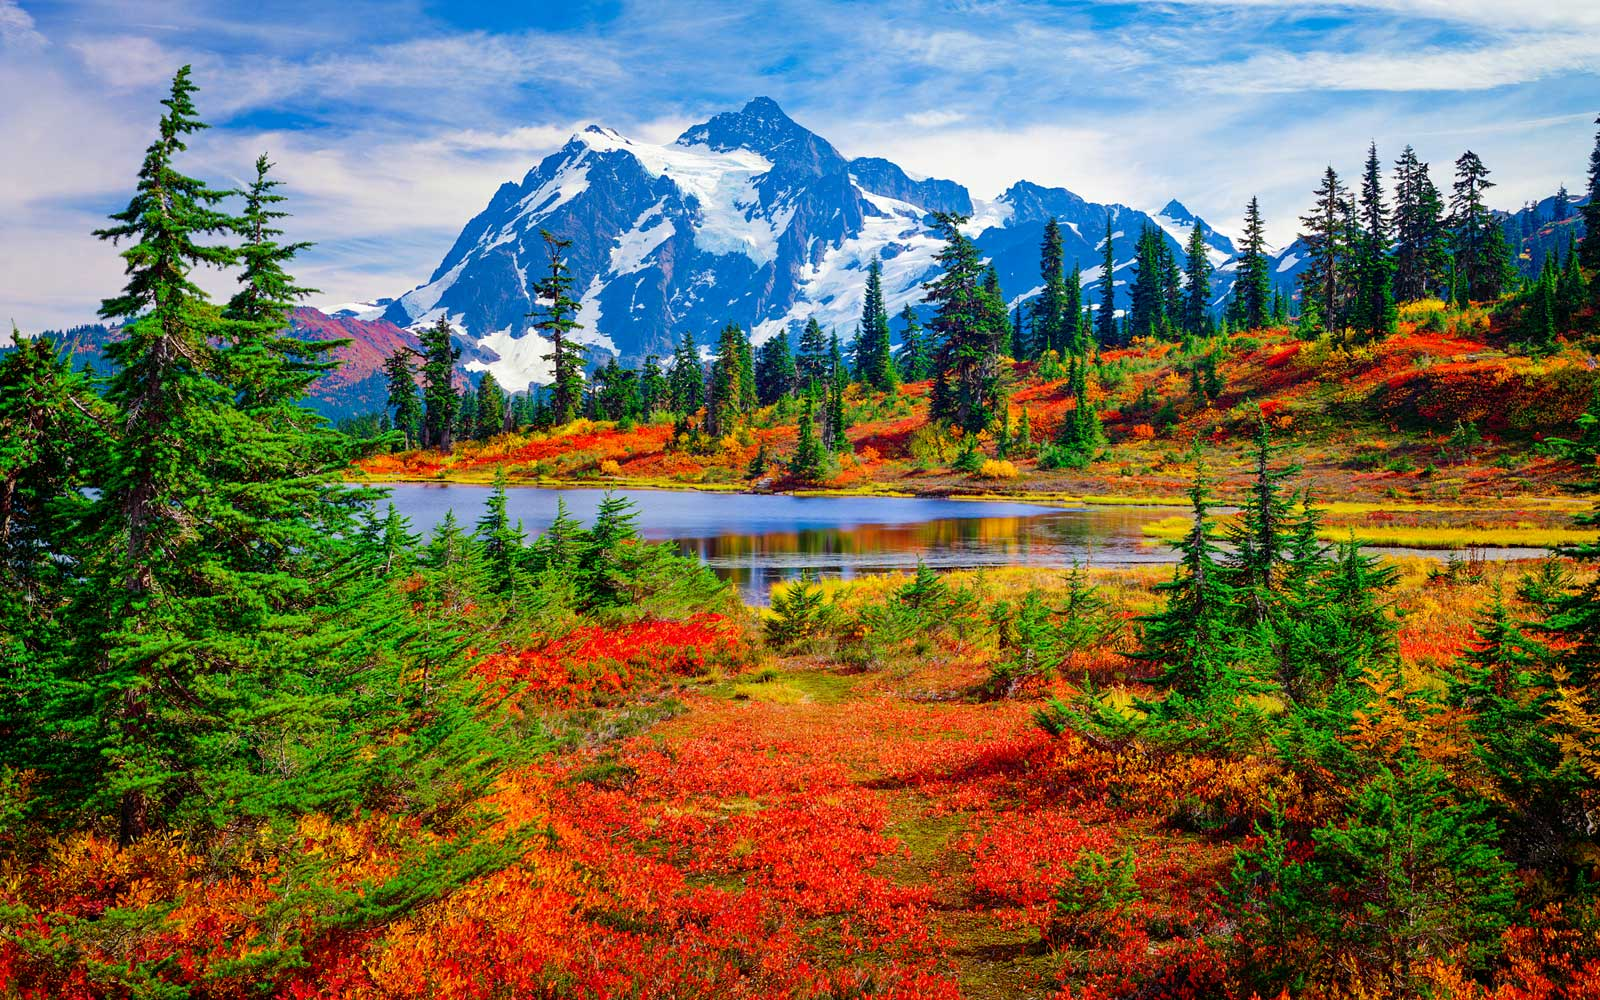 Red blueberry bushes adorn the grounds of North Cascades National Park in the fall.